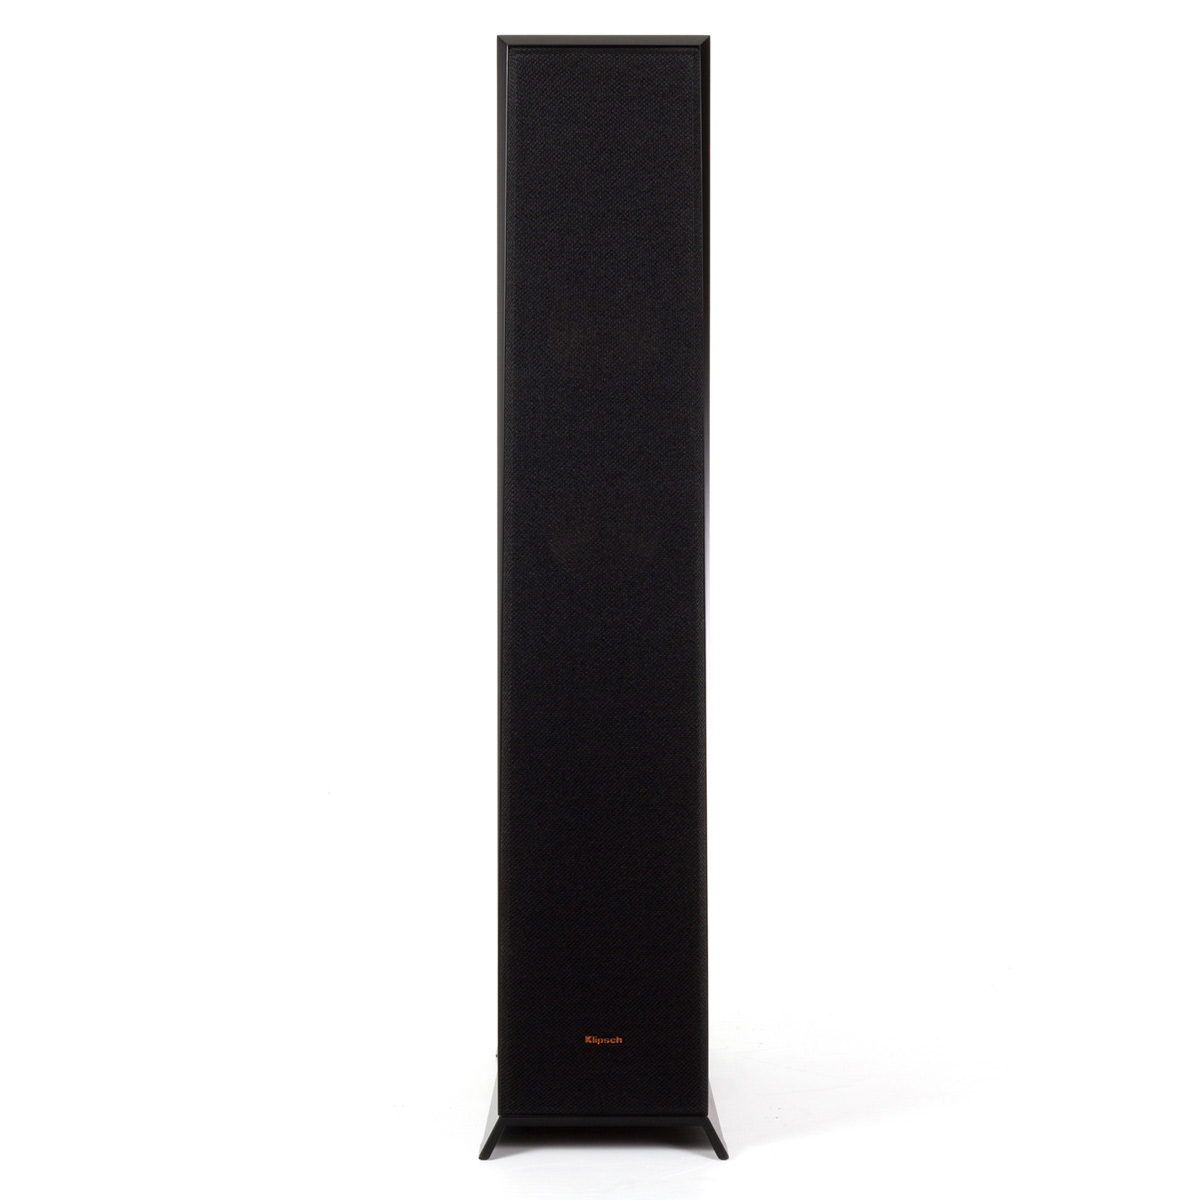 Klipsch-RP-5000F-Reference-Premiere-Floorstanding-Speakers-Pair thumbnail 16